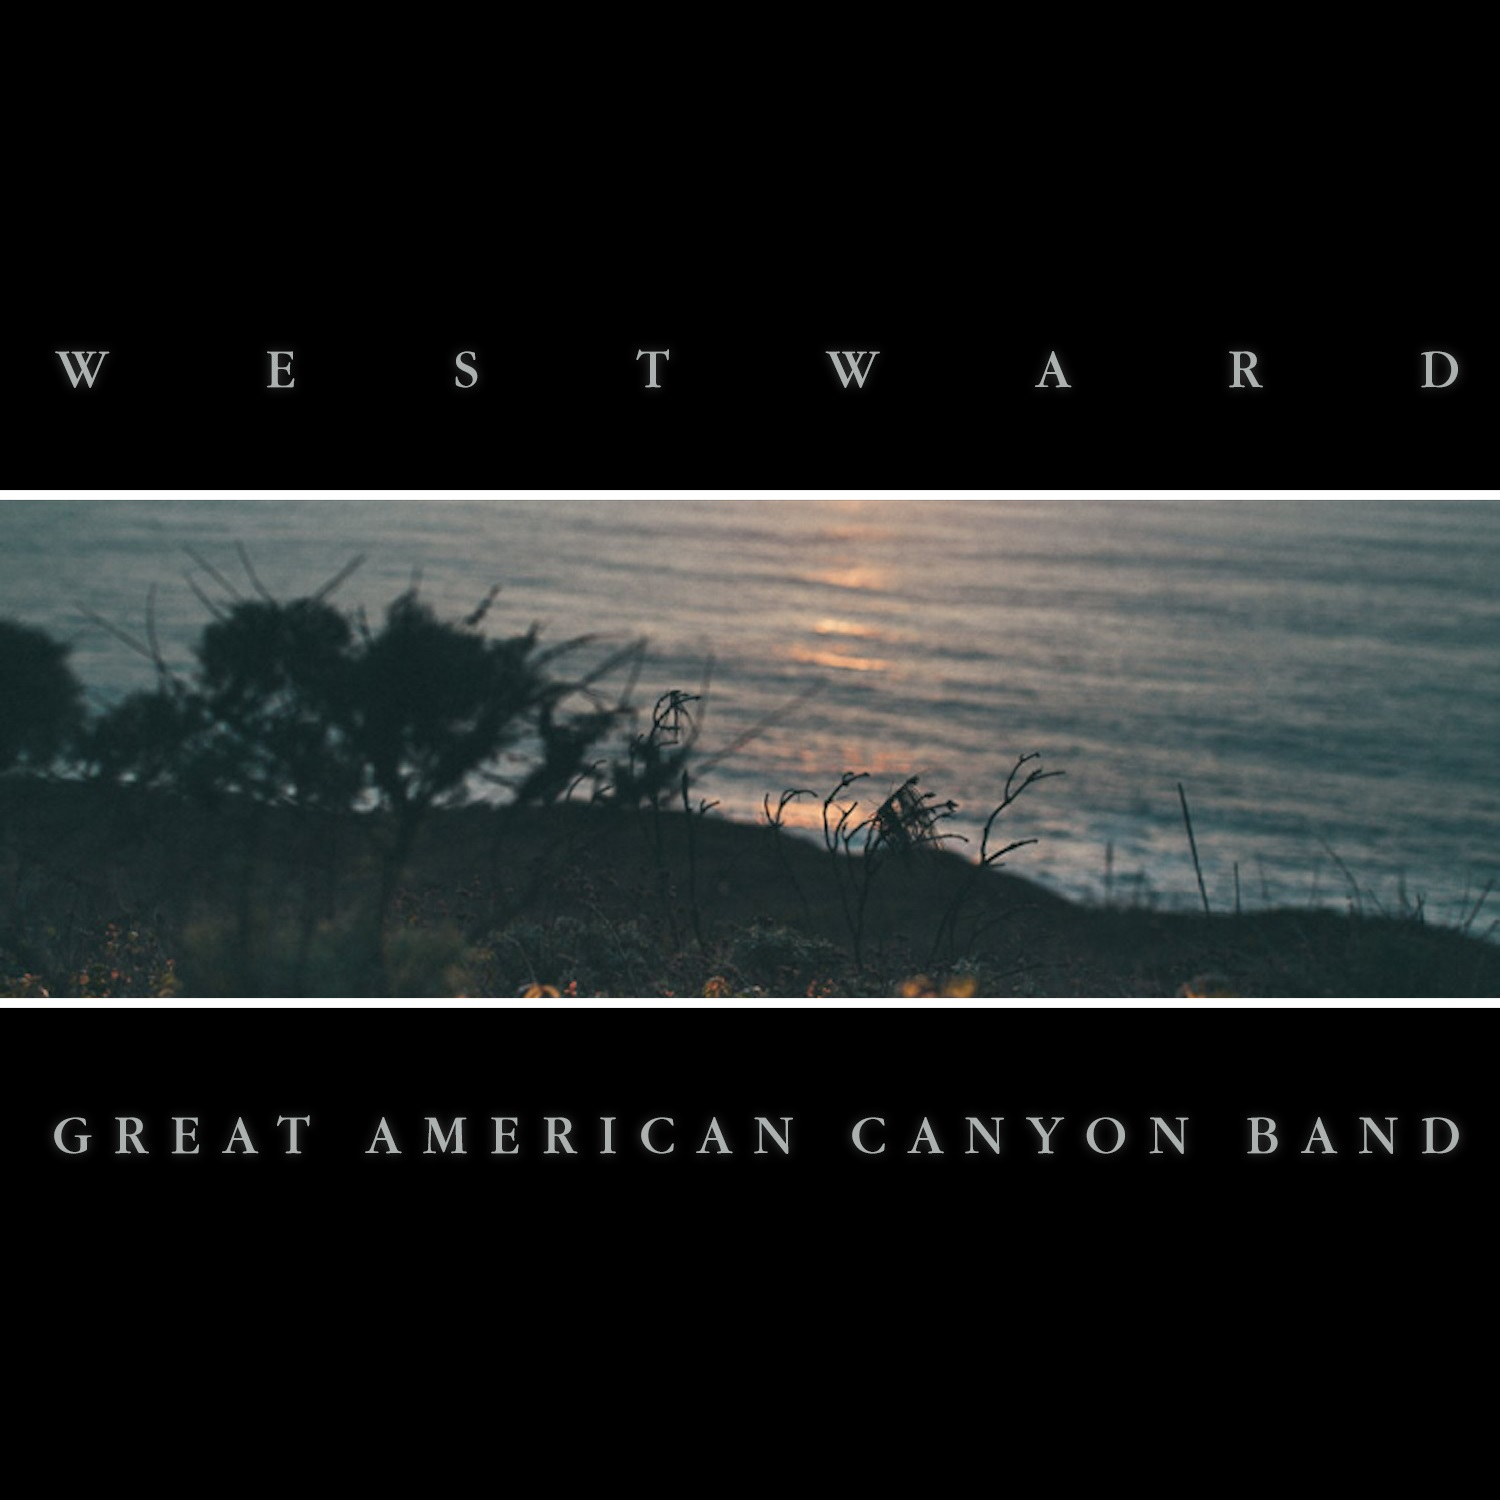 Great American Canyon Band x Noisetrade present Westward (free download)